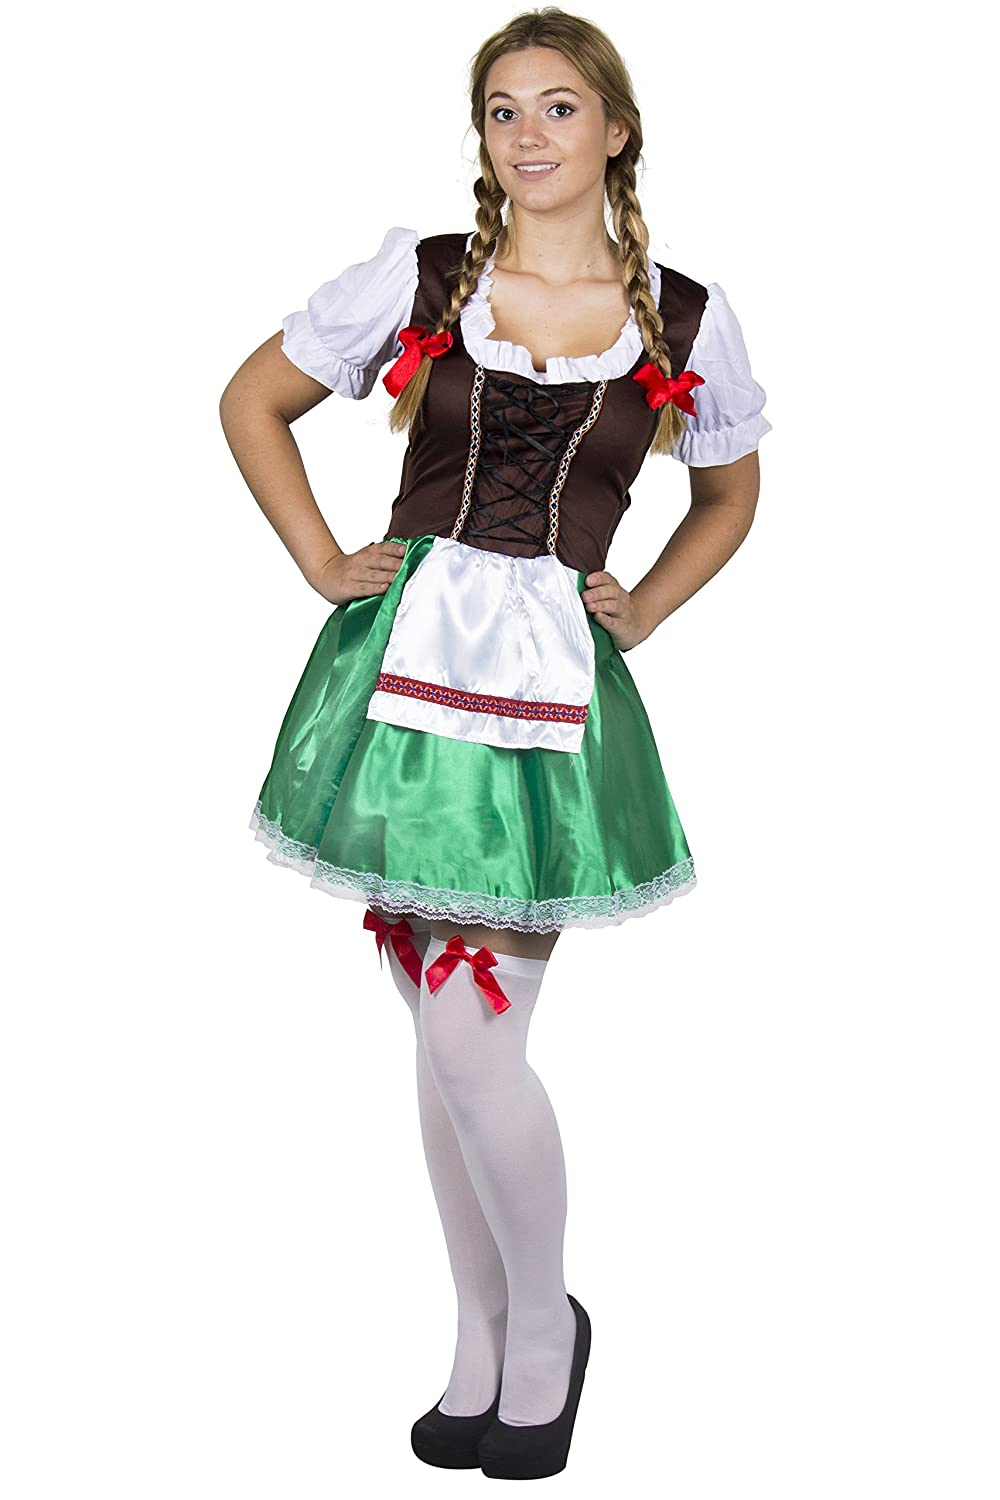 15fc935e1bb LADIES BROWN & GREEN BAVARIAN FANCY DRESS COSTUME WOMENS BEER MAIDEN MAID  OKTOBERFEST GERMAN STAGG AND HEN NIGHT BEER FESTIVAL DRESS - SMALL UK 8/10